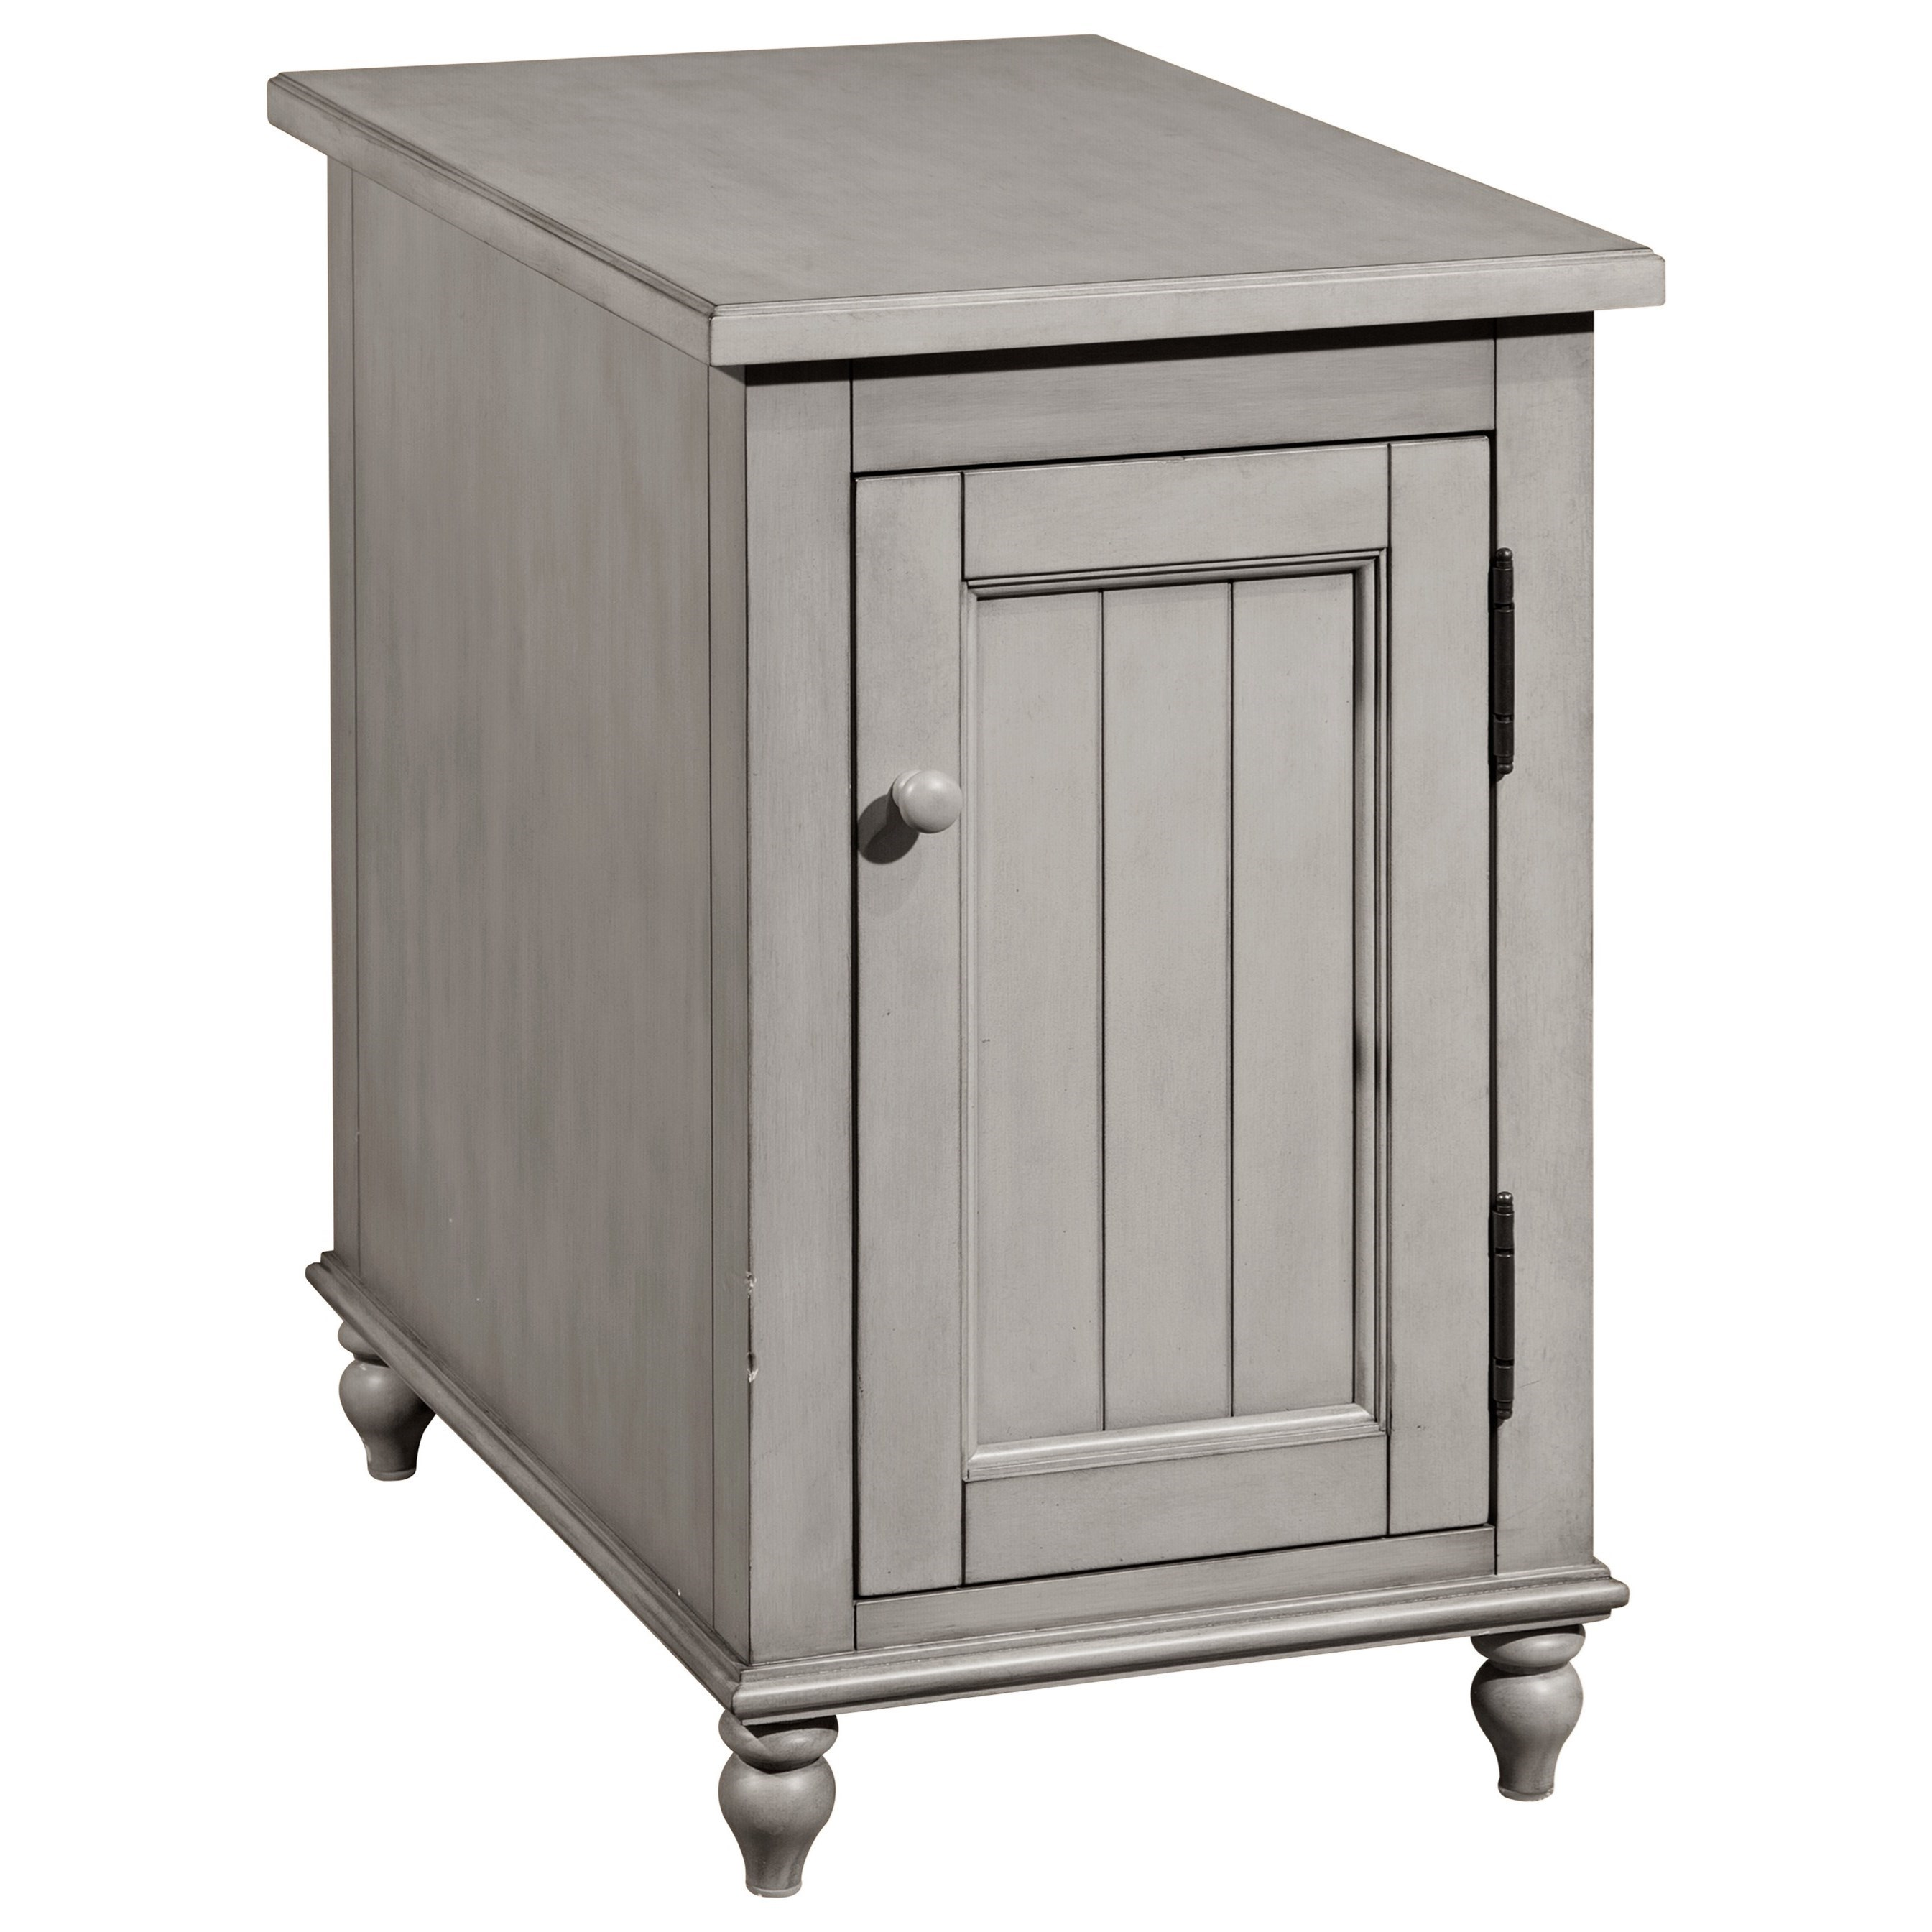 broyhill furniture kearsley gray accent table lindy products color reclinermates grey item number hallway chest patio dining sets decor cabinets elegant linens antique circular